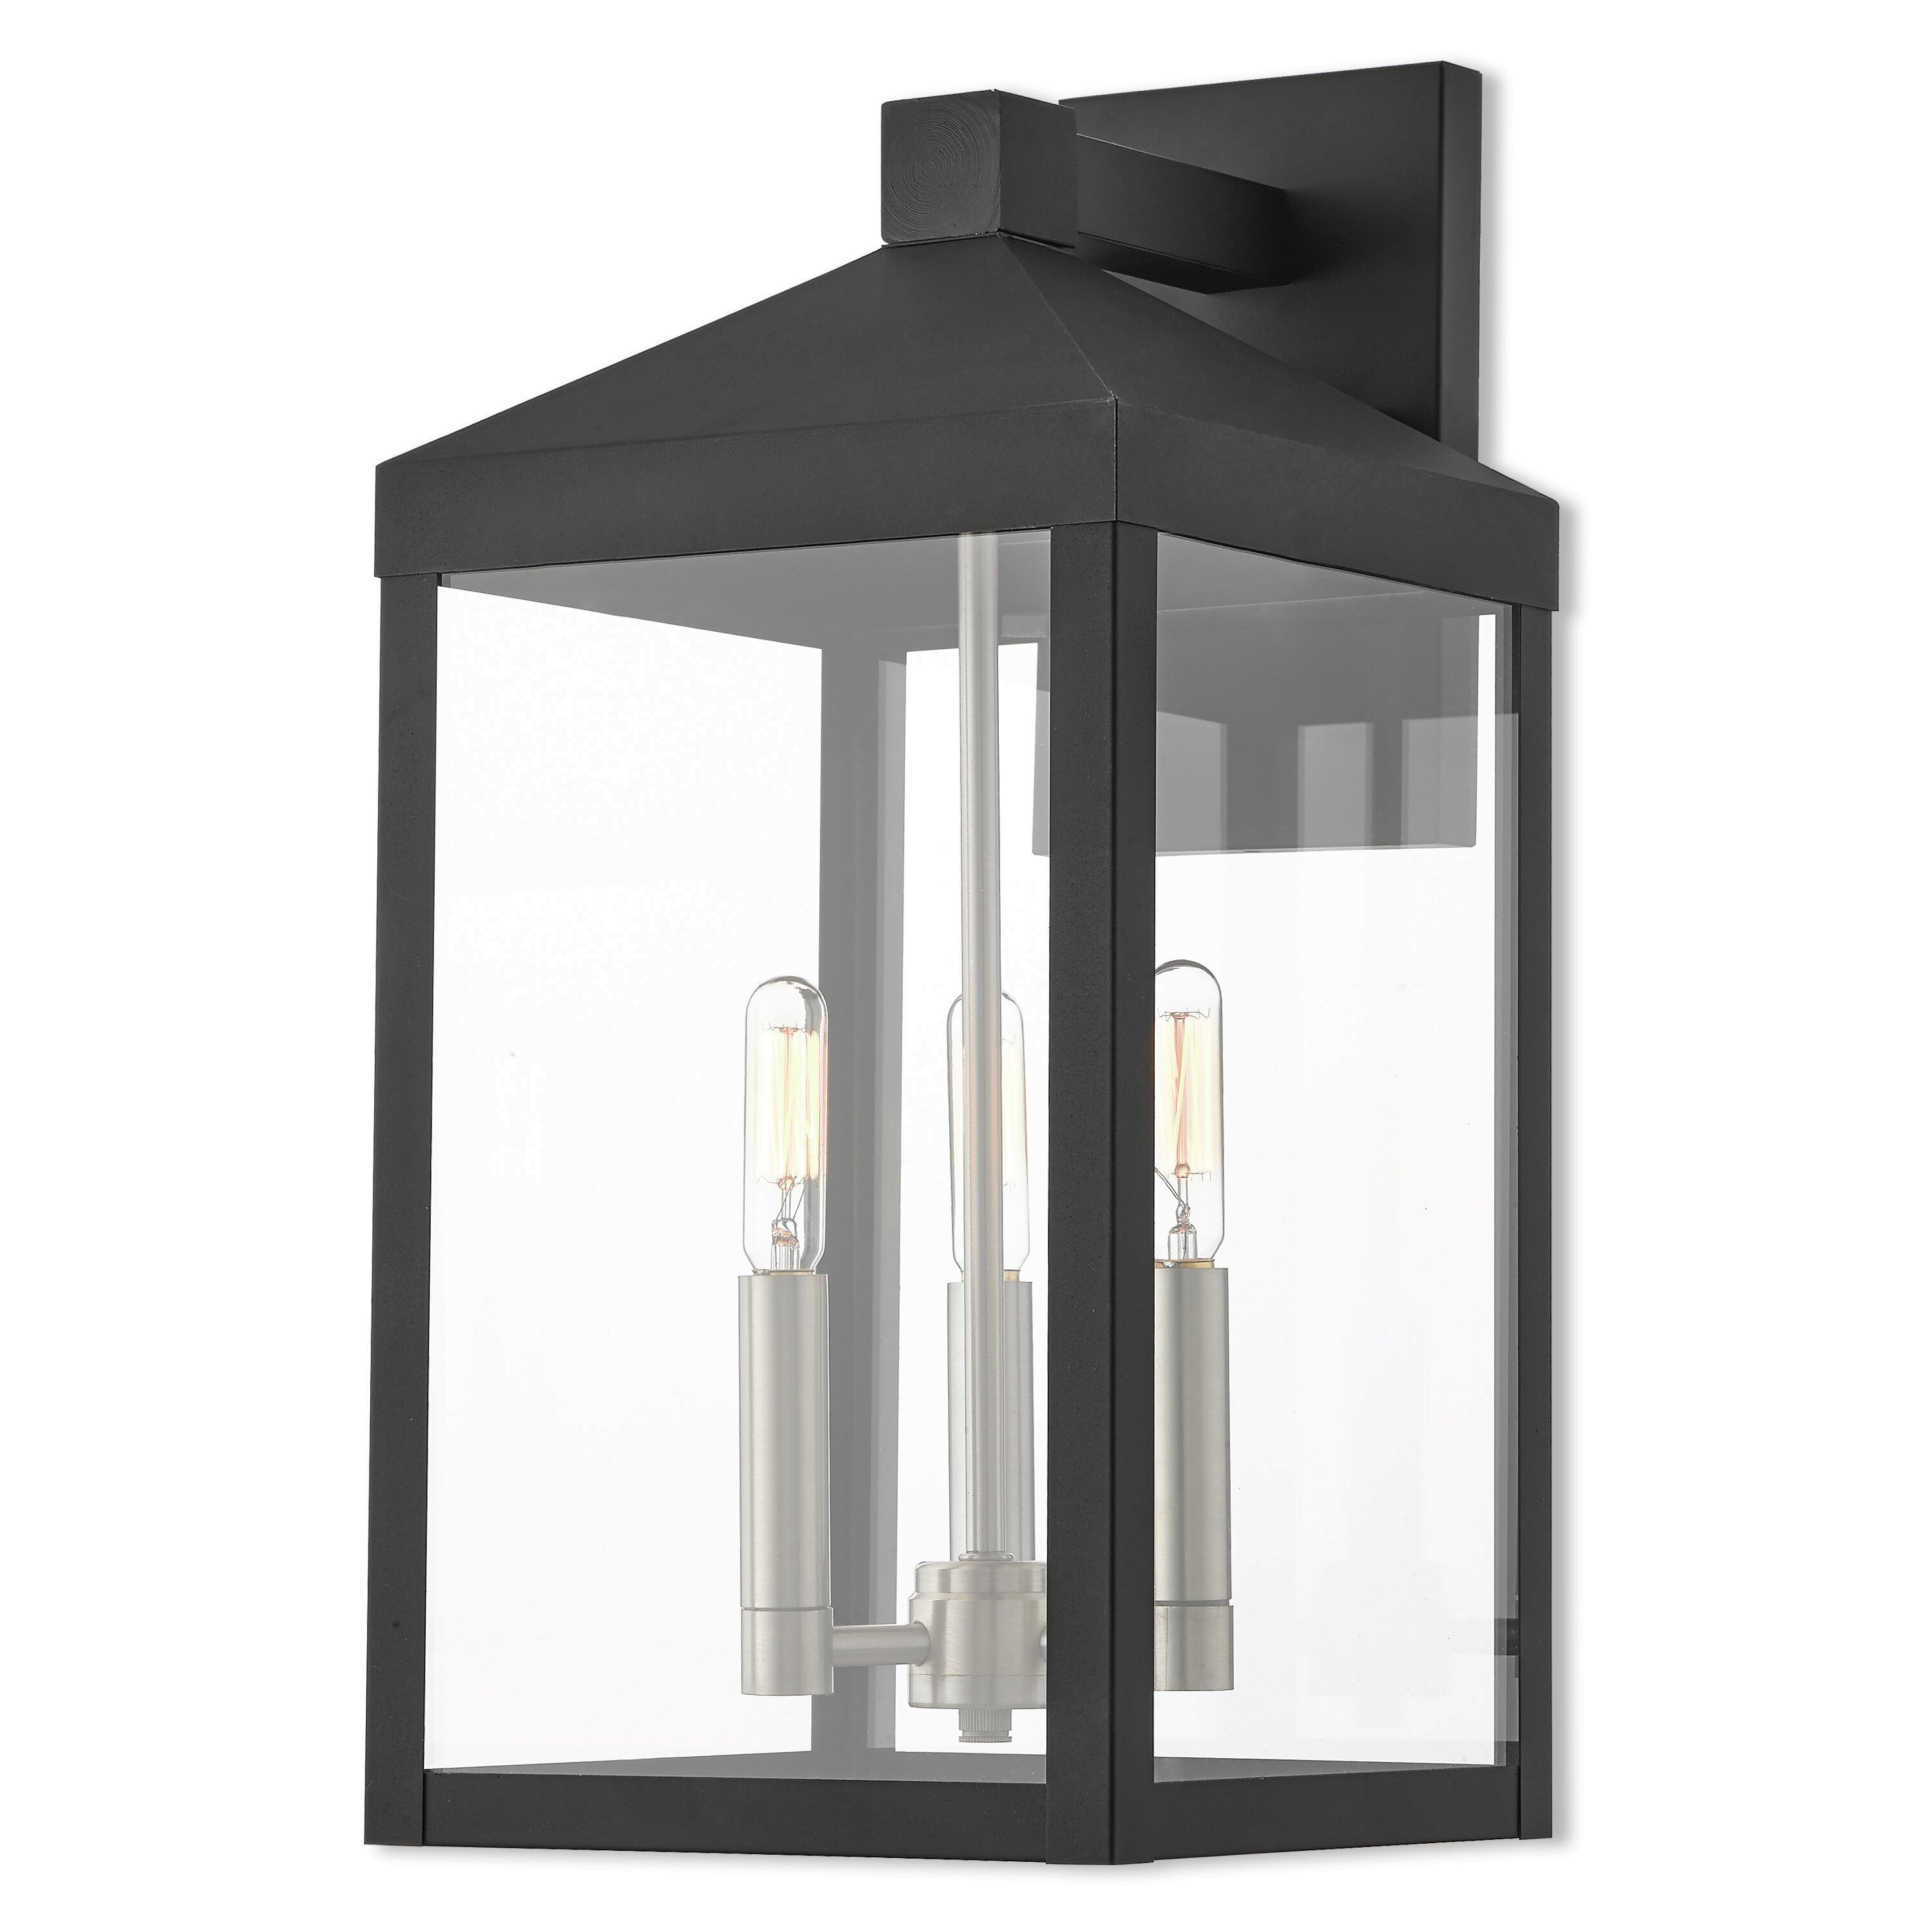 home barn outdoor eleanor b lamp general from barns lighting black by product architonic en